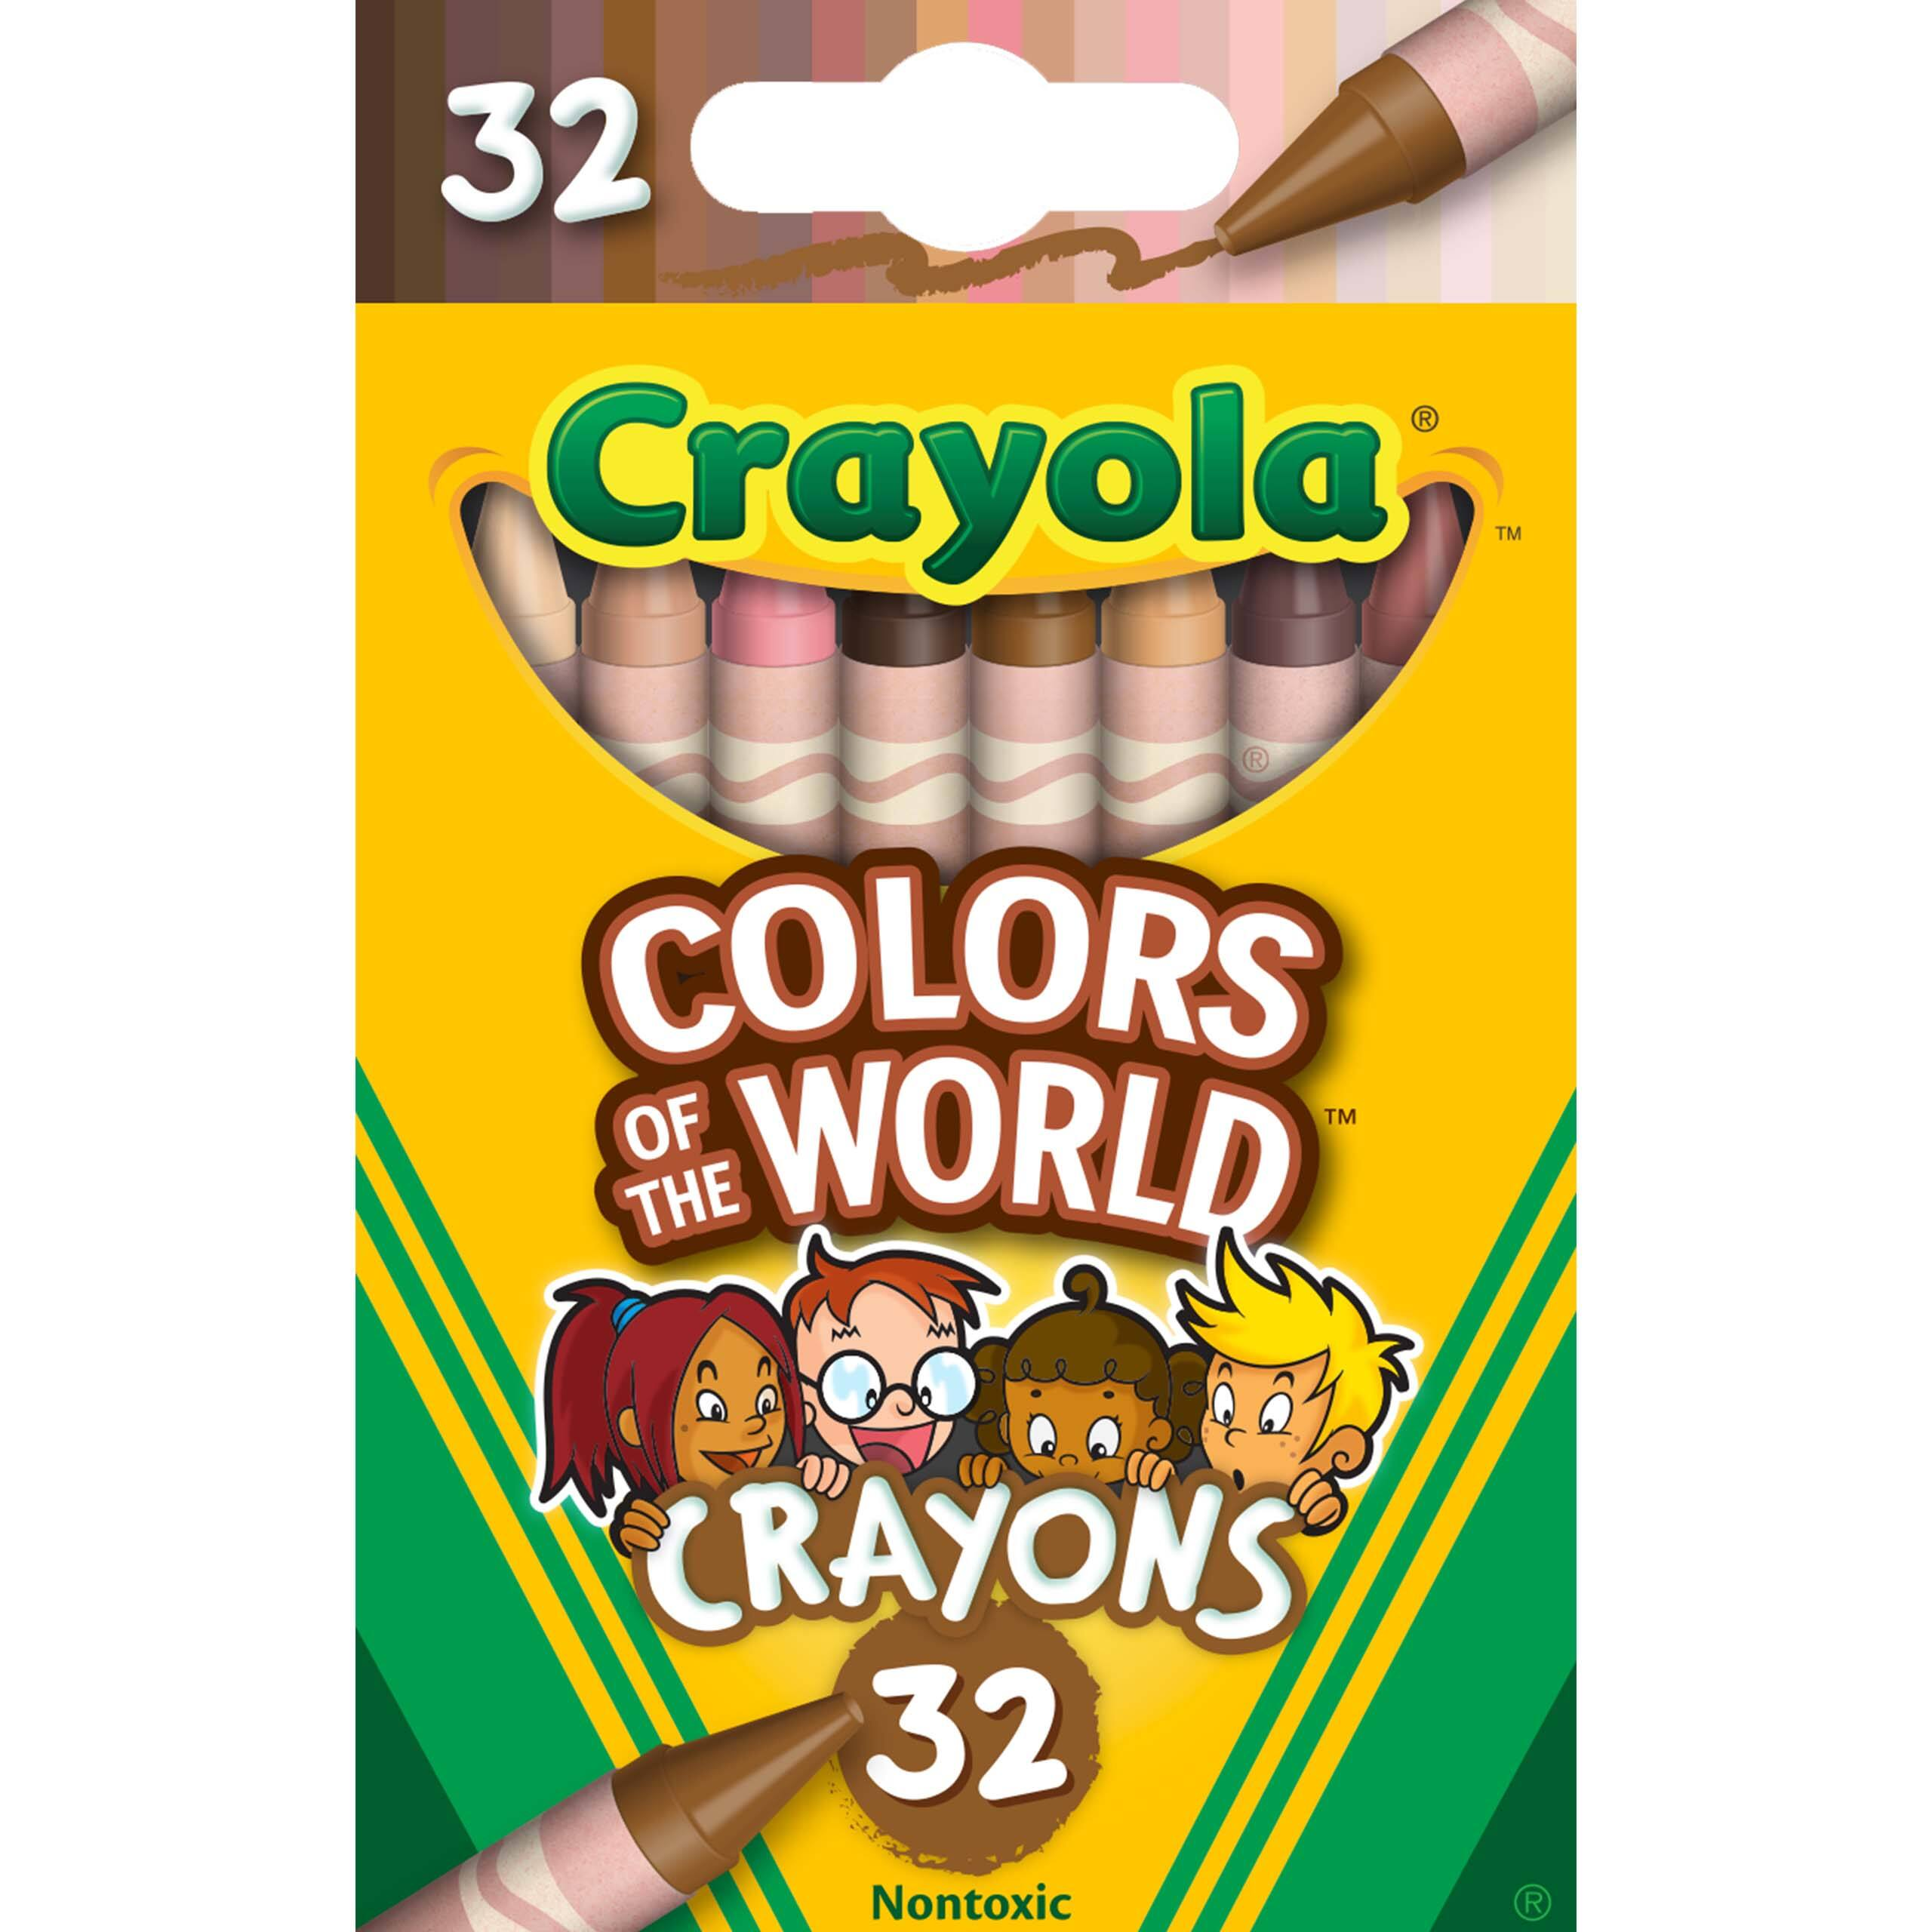 32-Count Crayola Colors of the World Crayons Pre-Order